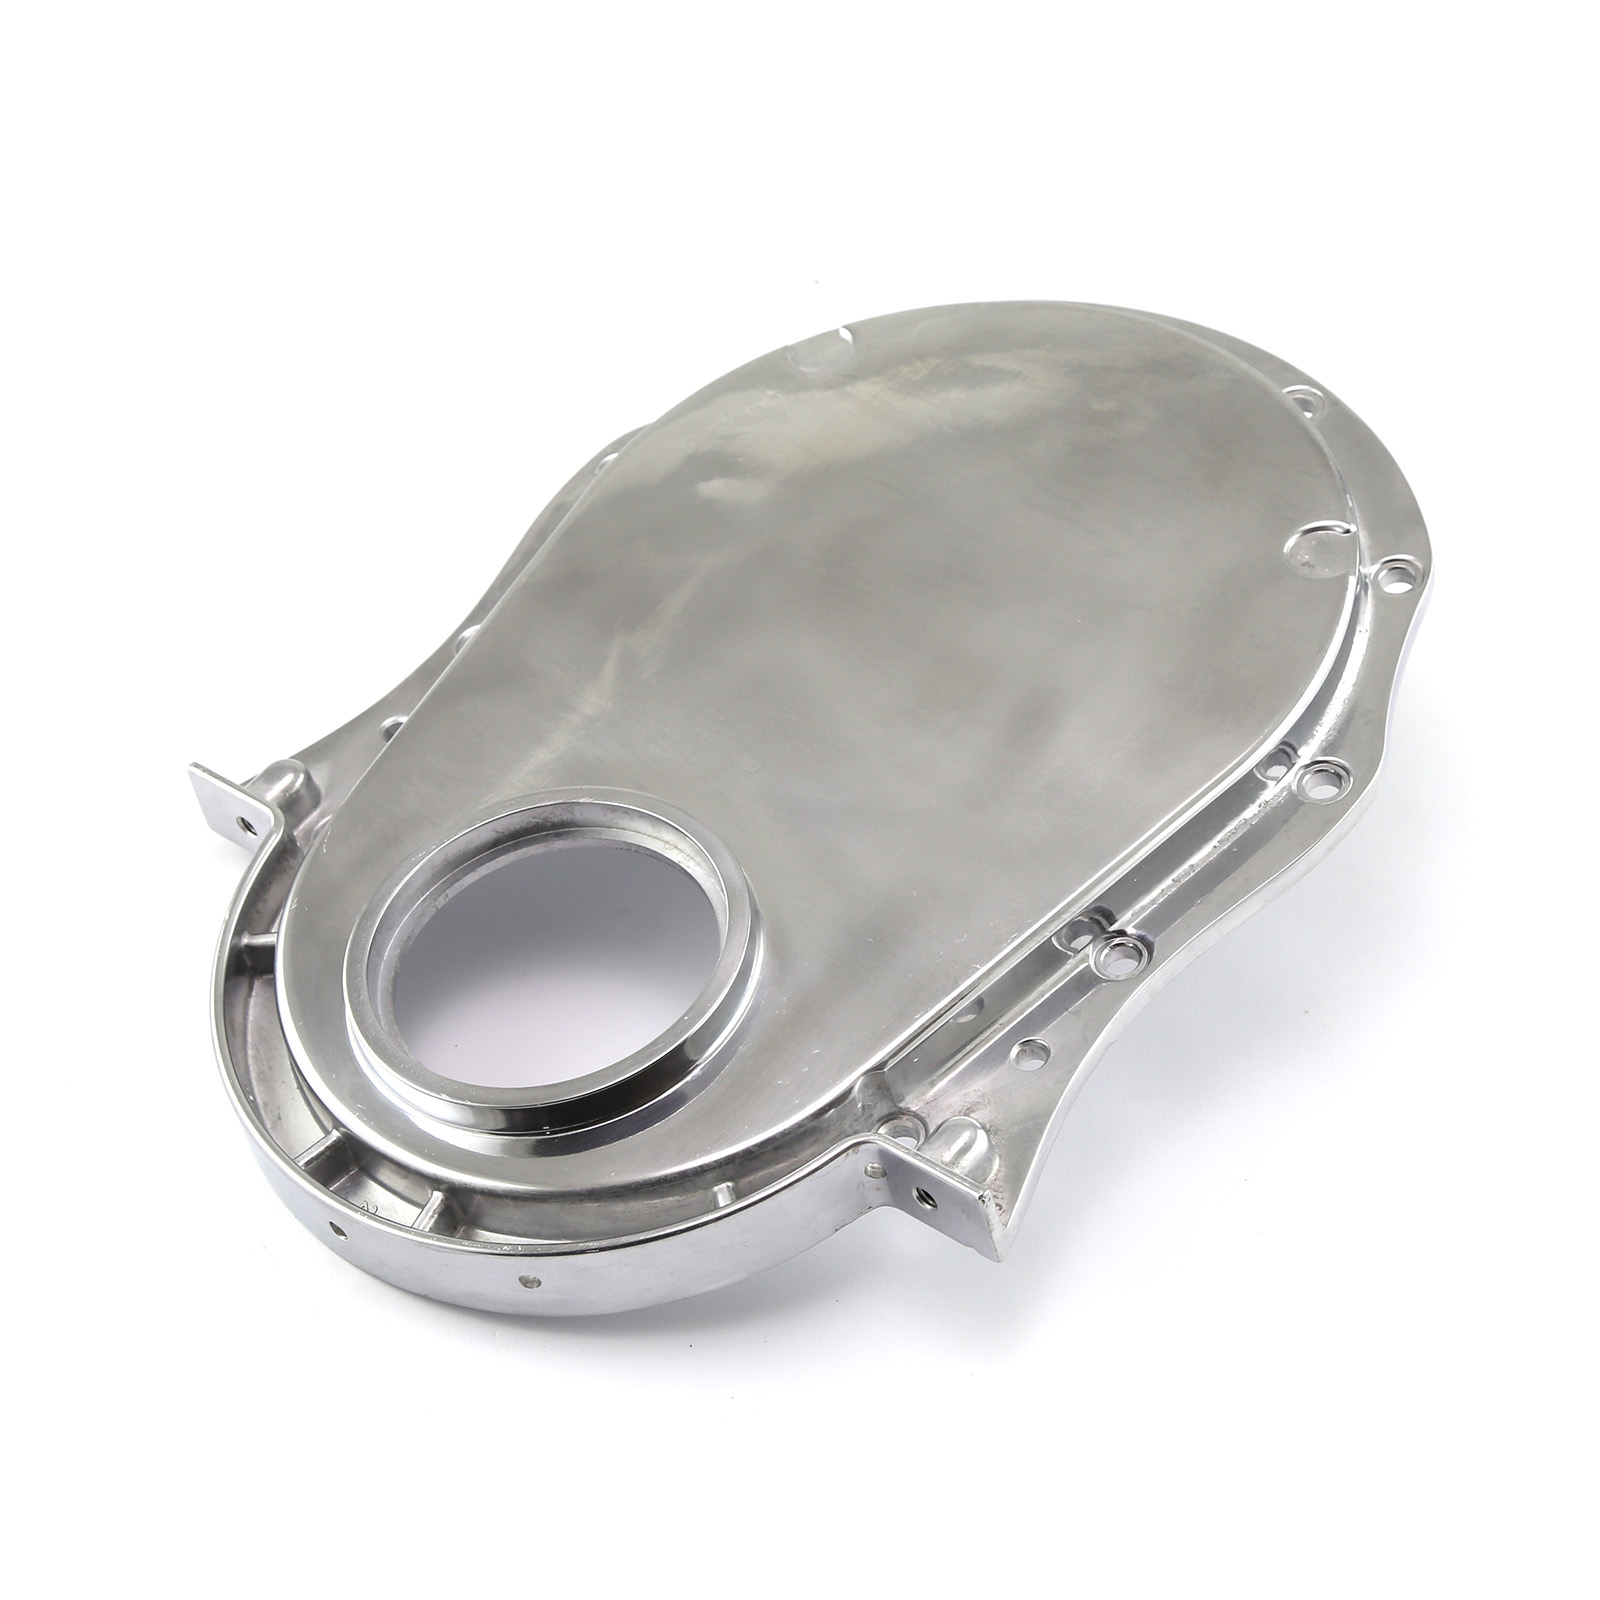 Chevy BBC 454 Gen 4 Aluminum Timing Chain Cover Polished